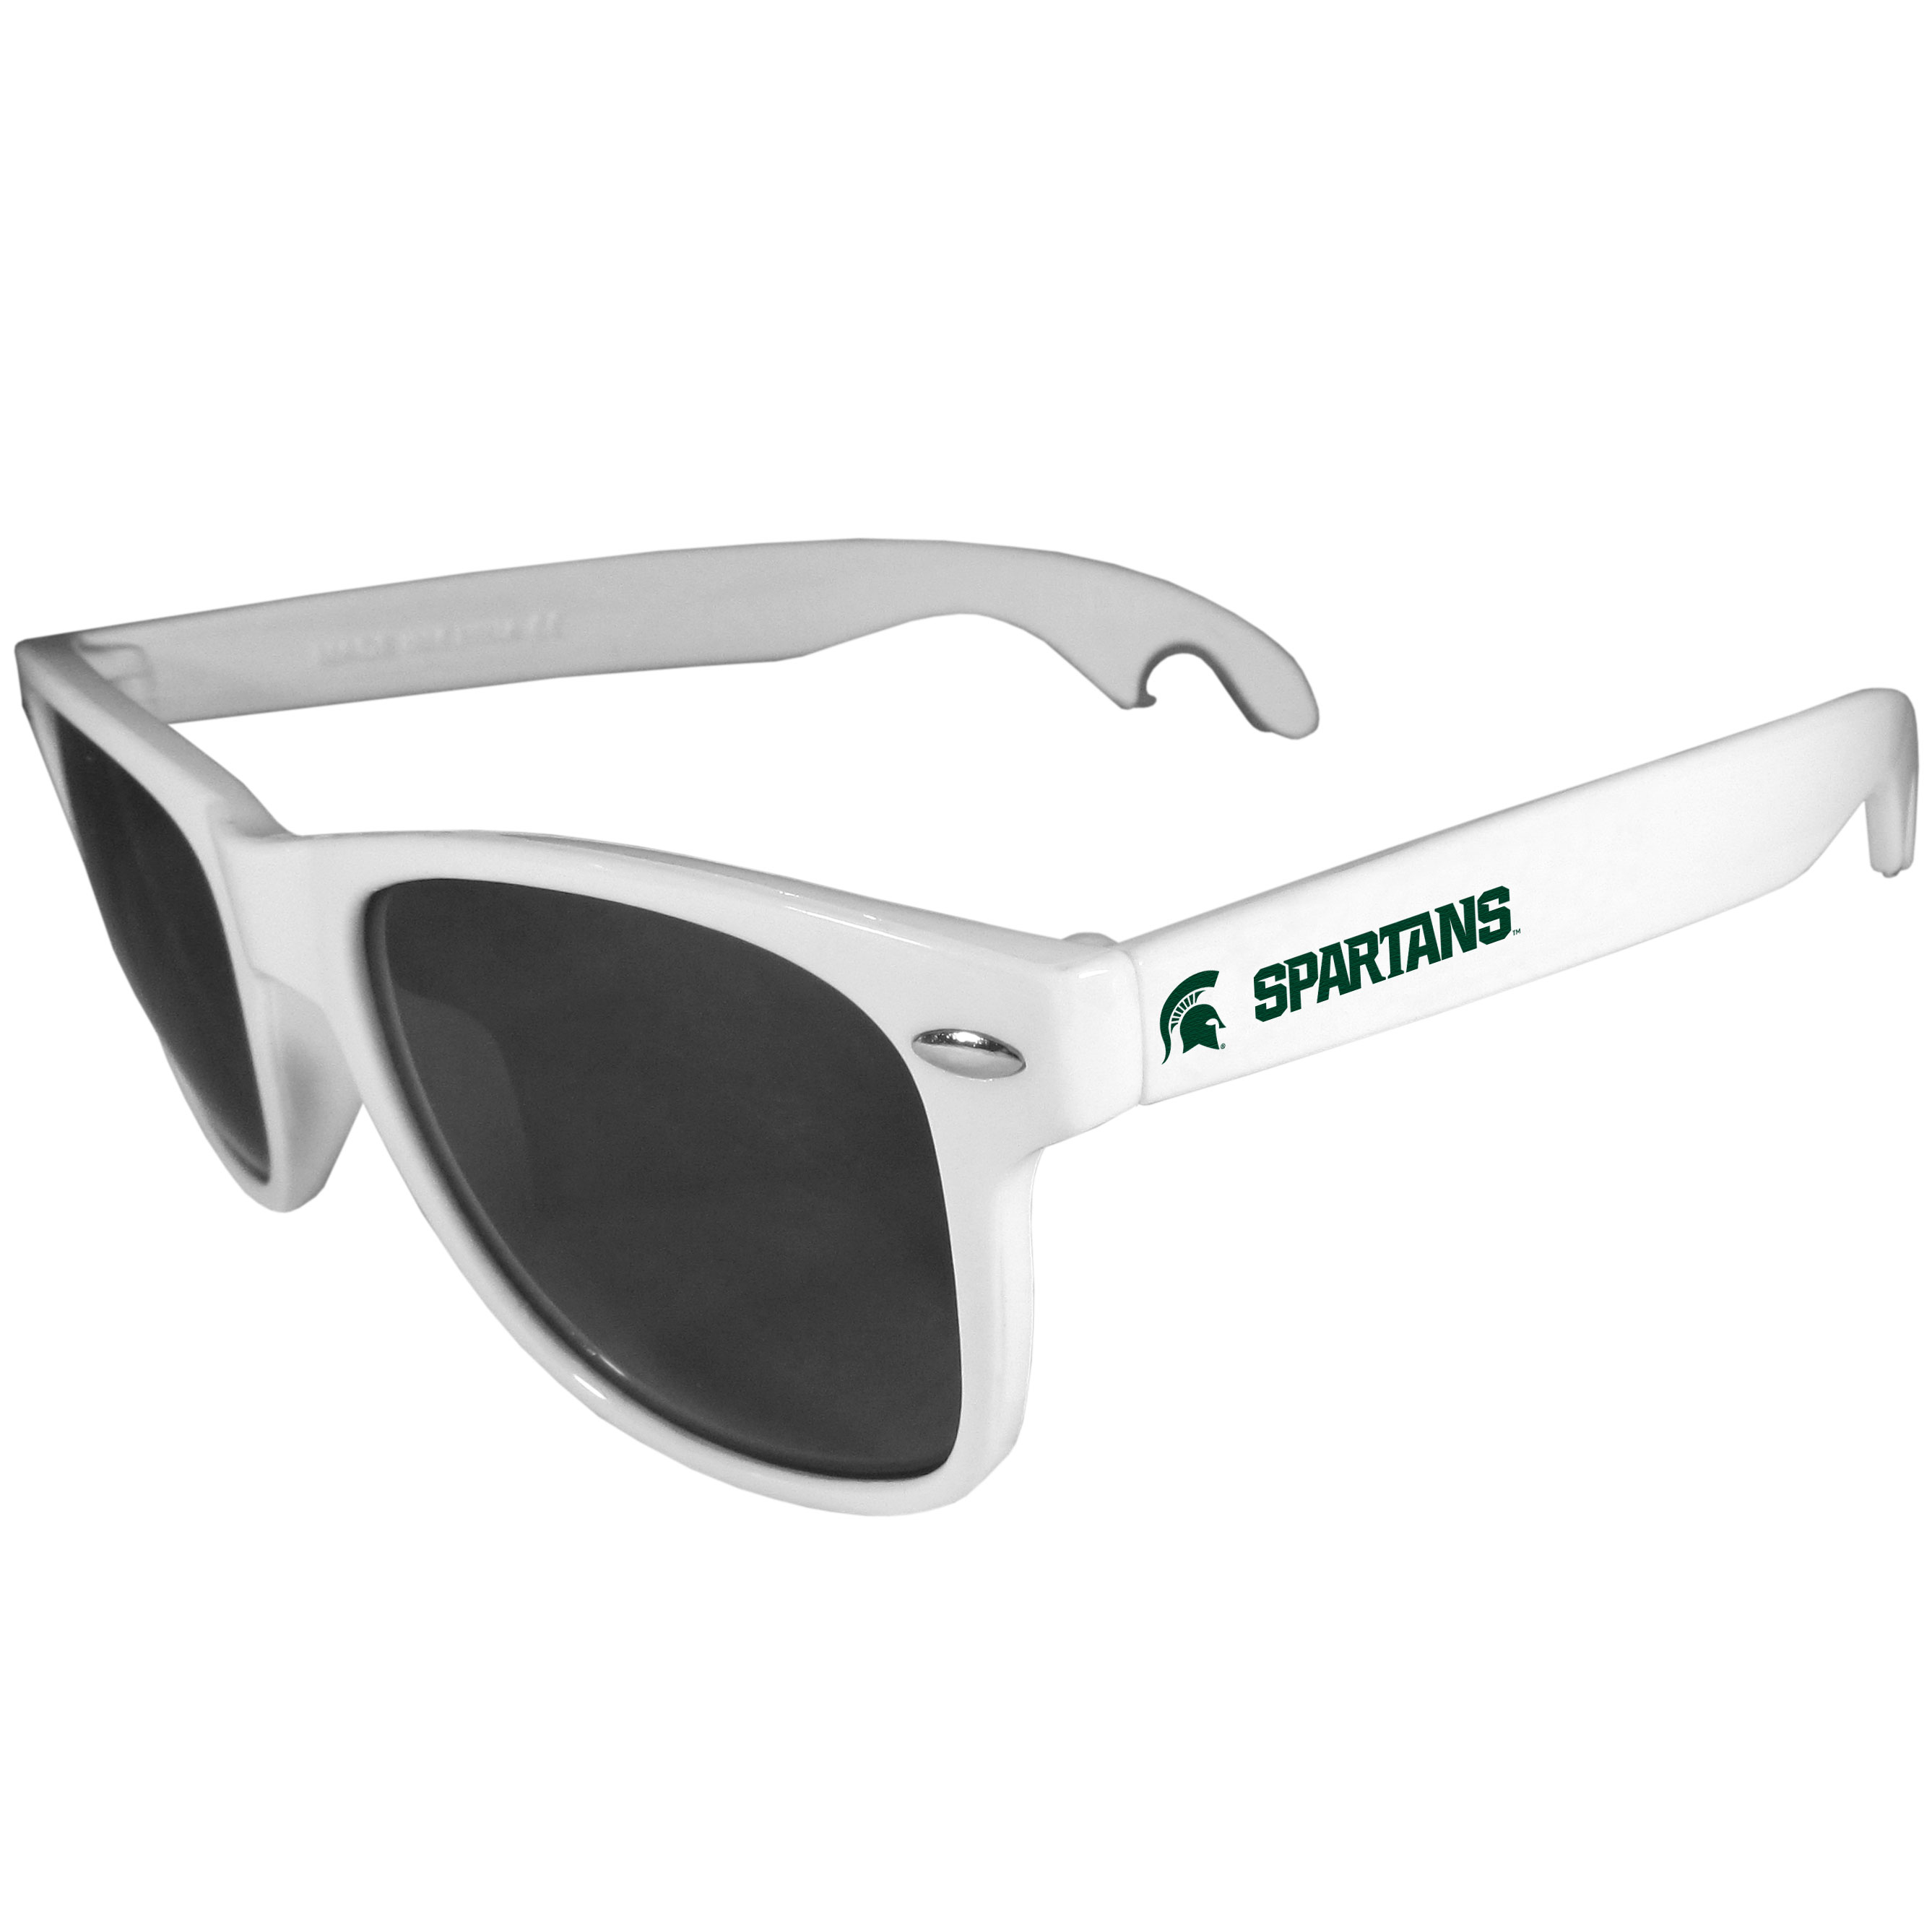 Michigan St. Spartans Beachfarer Bottle Opener Sunglasses, White - Seriously, these sunglasses open bottles! Keep the party going with these amazing Michigan St. Spartans bottle opener sunglasses. The stylish retro frames feature team designs on the arms and functional bottle openers on the end of the arms. Whether you are at the beach or having a backyard BBQ on game day, these shades will keep your eyes protected with 100% UVA/UVB protection and keep you hydrated with the handy bottle opener arms.